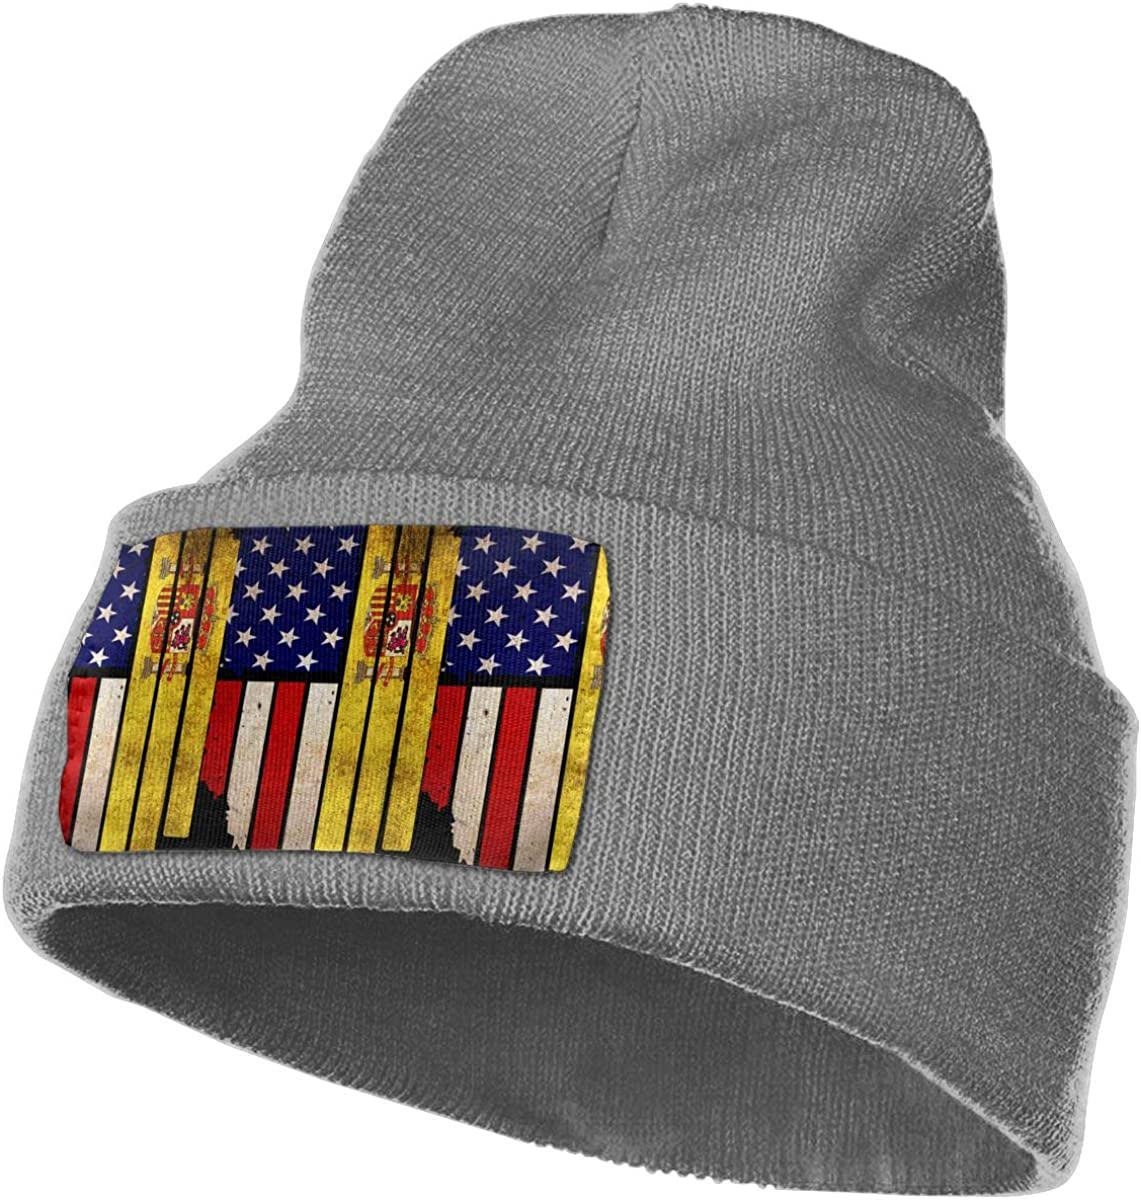 Vintage USA Spain Flag Warm Knitting Hat Mens Womens 100/% Acrylic Beanie Hat